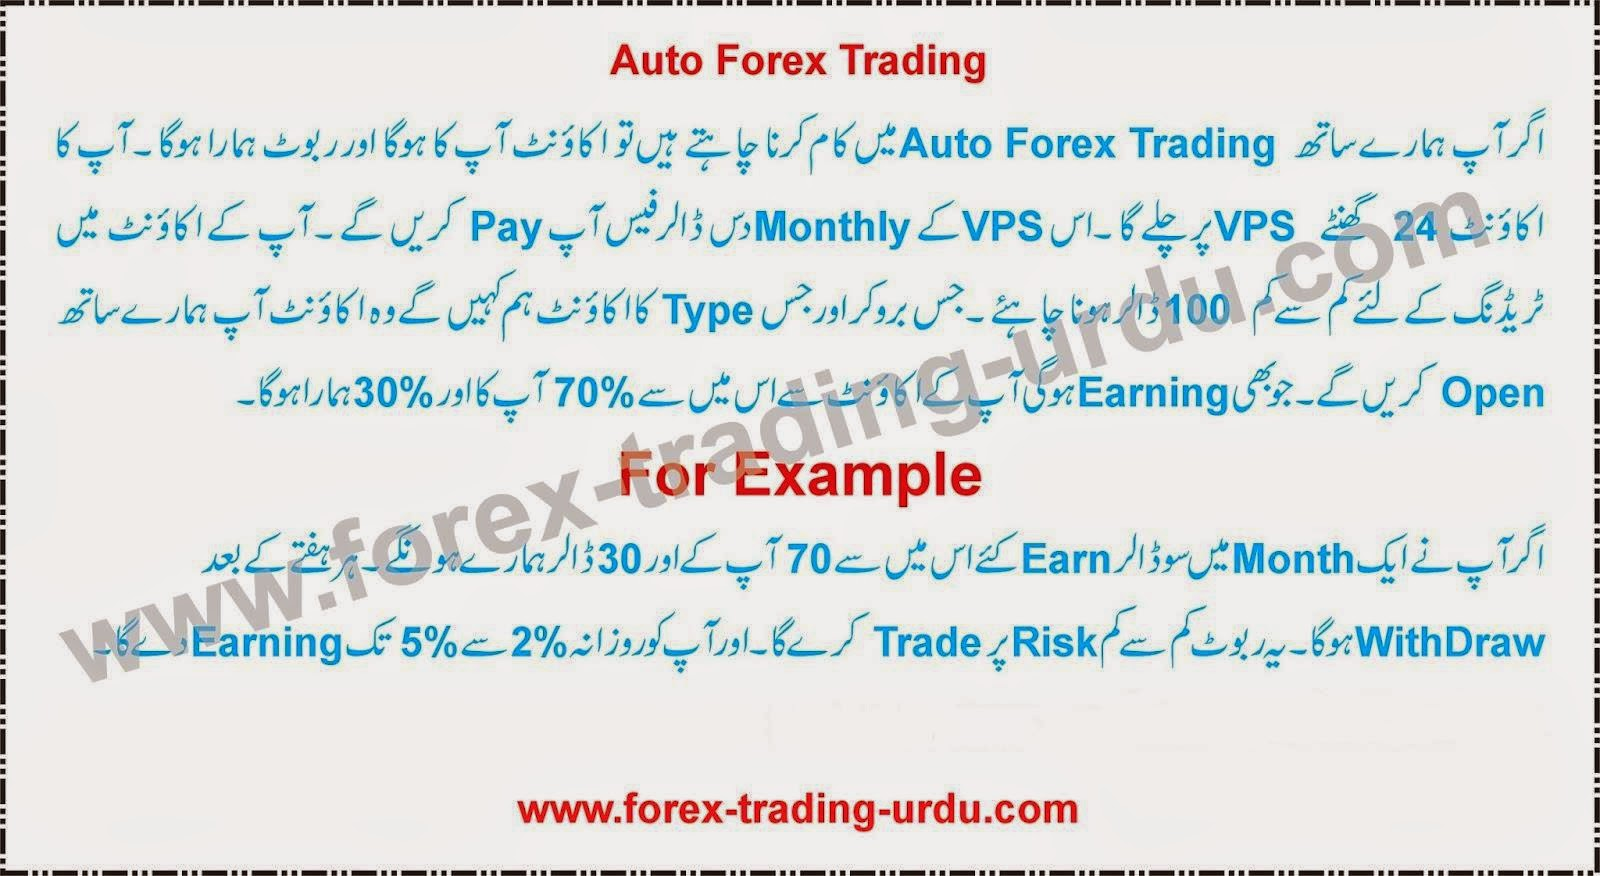 Forex urdu meaning